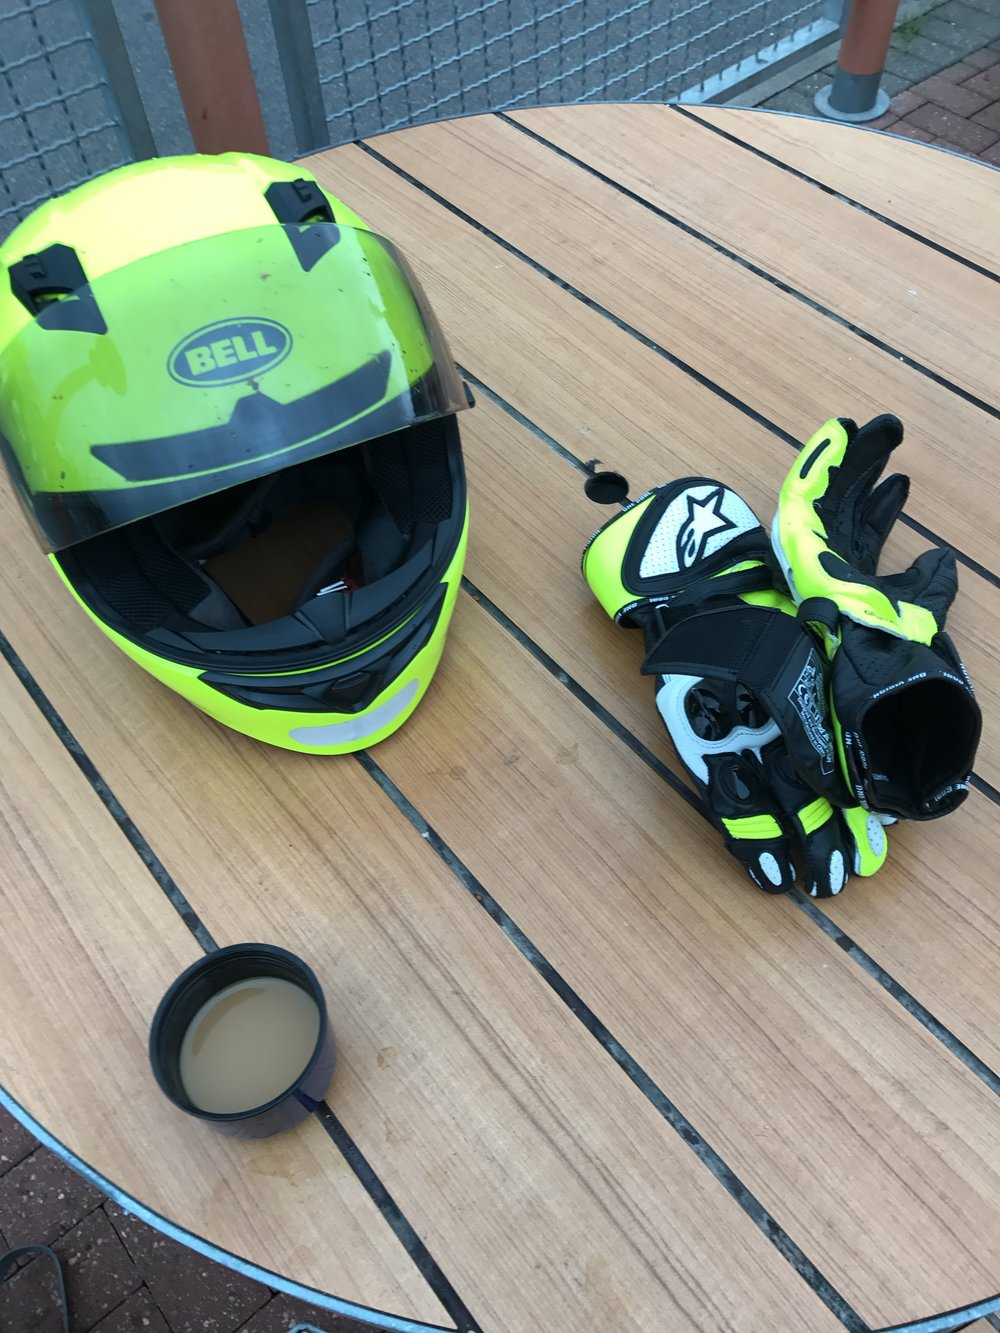 I have a number of helmets, one of my favourites is this Bell Full face. it is light and has great sound proofing, combined with good air vents. The gloves are Alpinestars and so good. Comfy, warm and flexible.